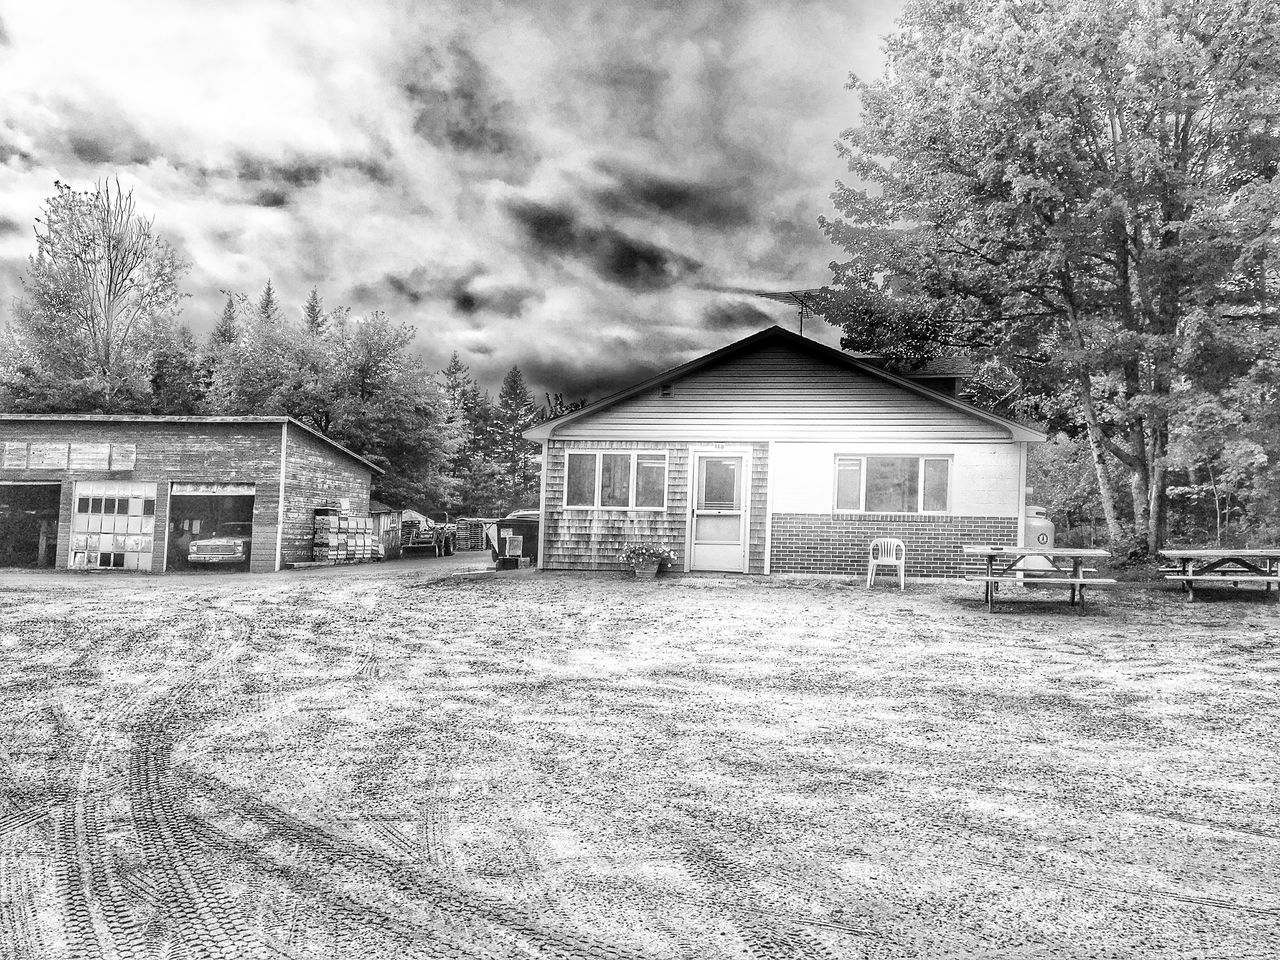 Maine Southwest Hbr Built Structure Architecture Building Exterior House Tree Residential Structure Residential Building Transportation Land Vehicle Field Outdoors Day Cloud - Sky Rural Scene No People Pine Tree Roadside Shots Crab Picking Shop Garage Scenery Blackandwhite Monochrome Photography